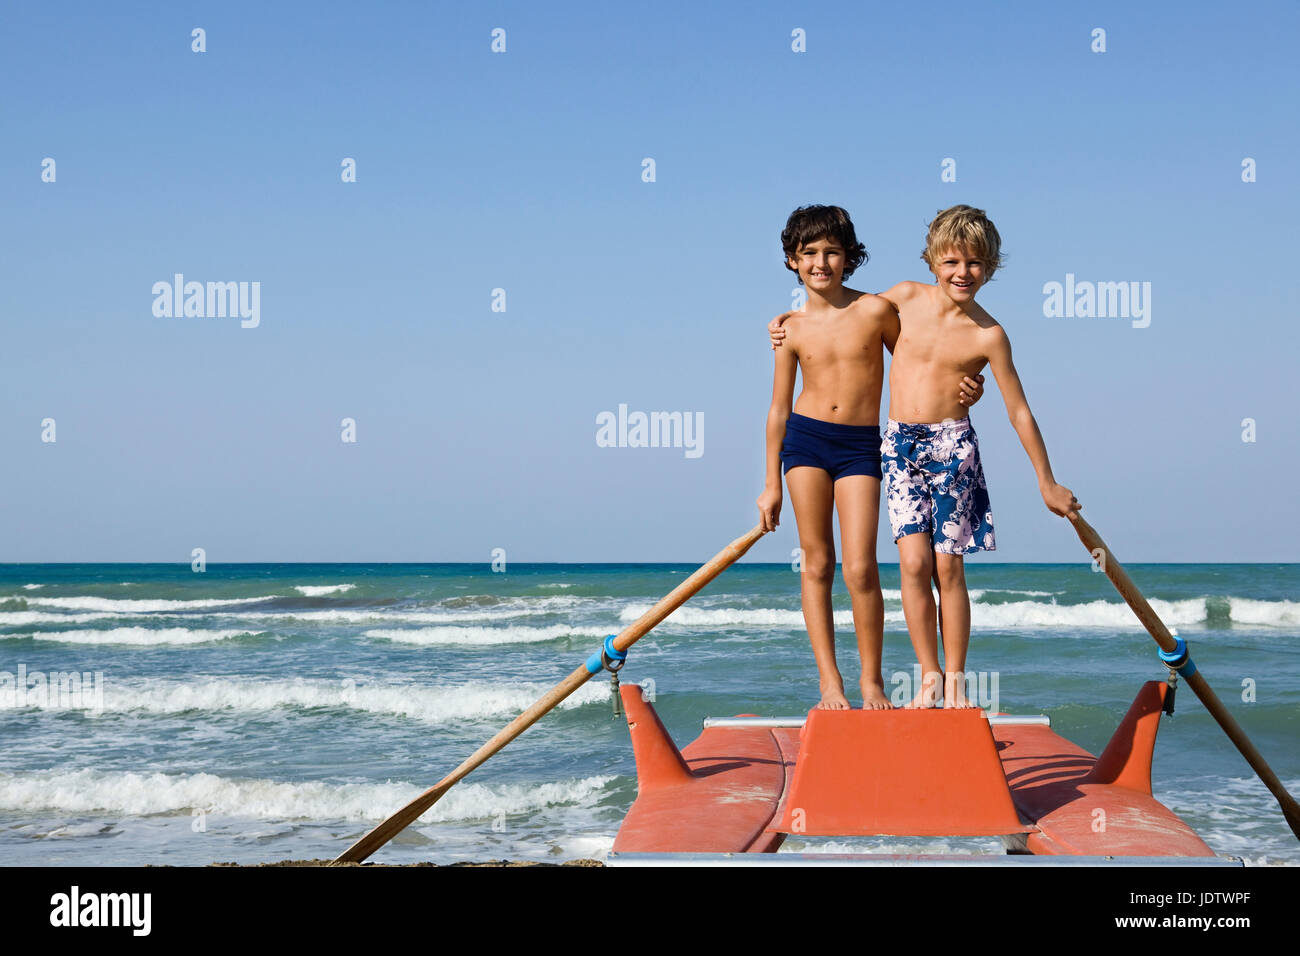 Two young boys on a nautical vessel - Stock Image